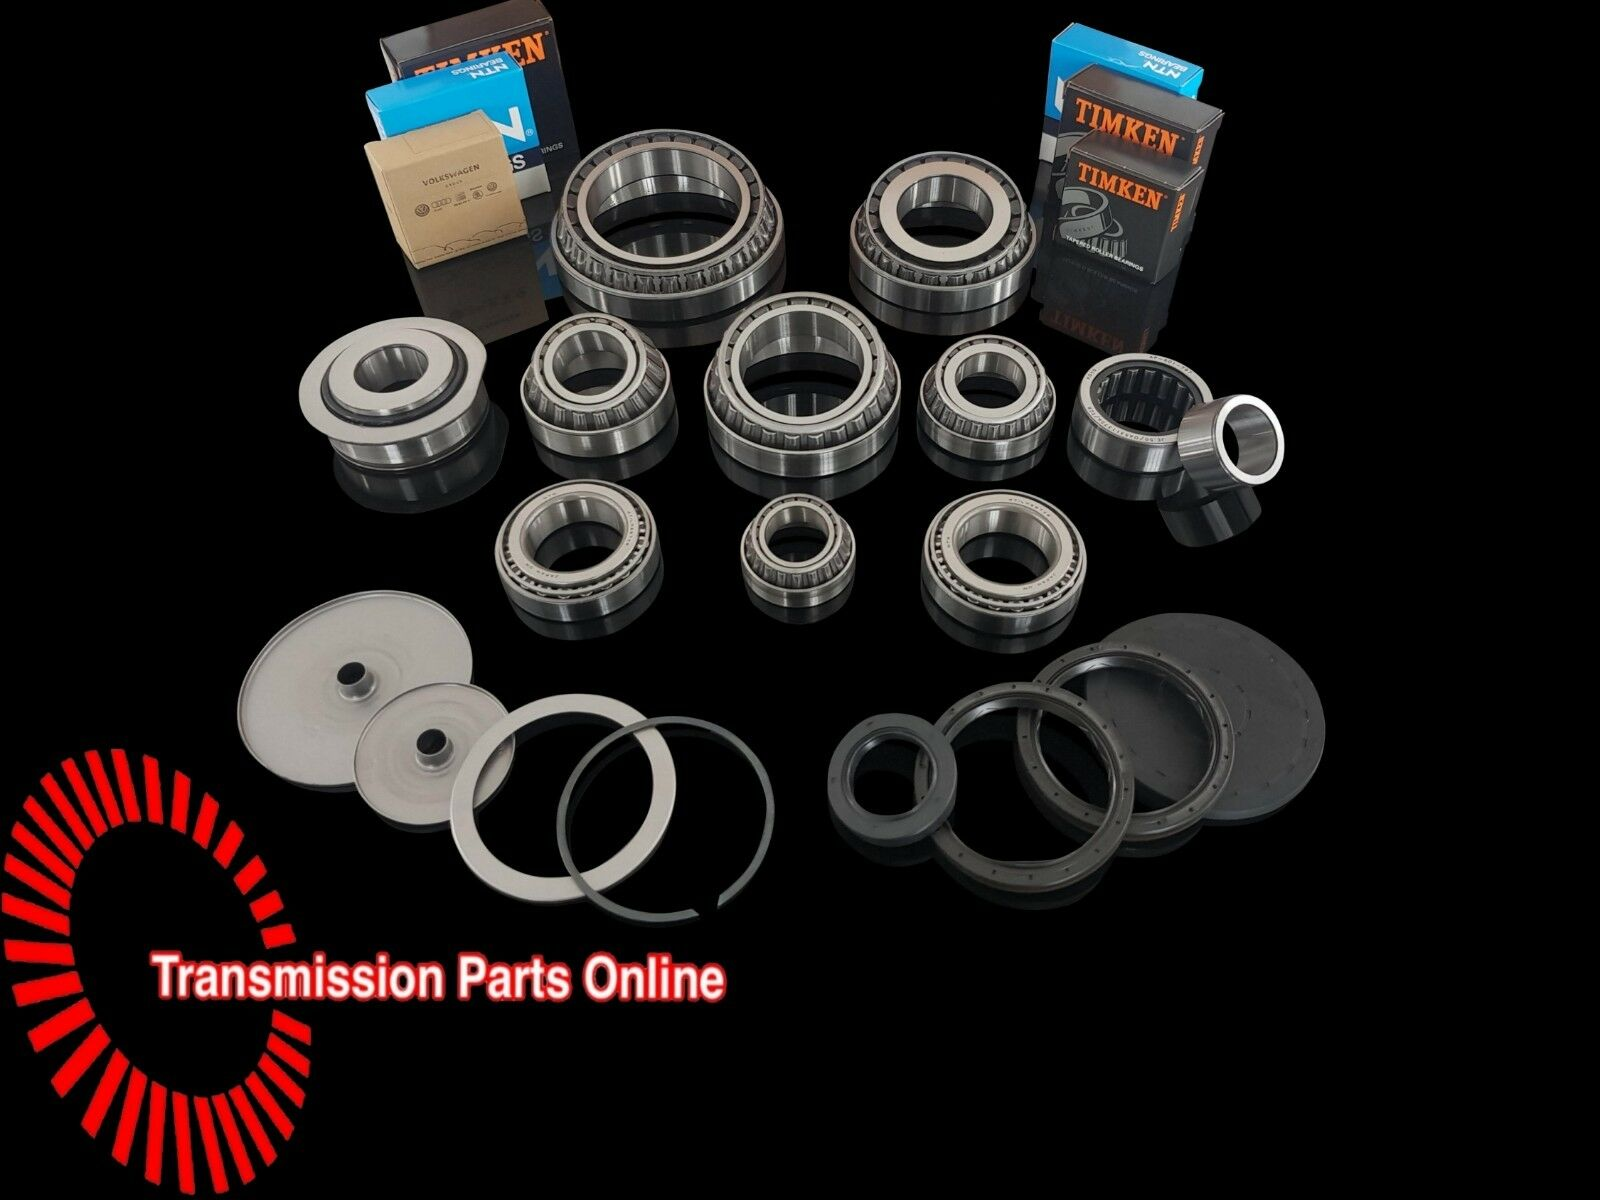 Details about VW Transporter T5 2 5TD 6 Spd 0A5 Late Gearbox Bearing & Oil  Seal Rebuild Kit